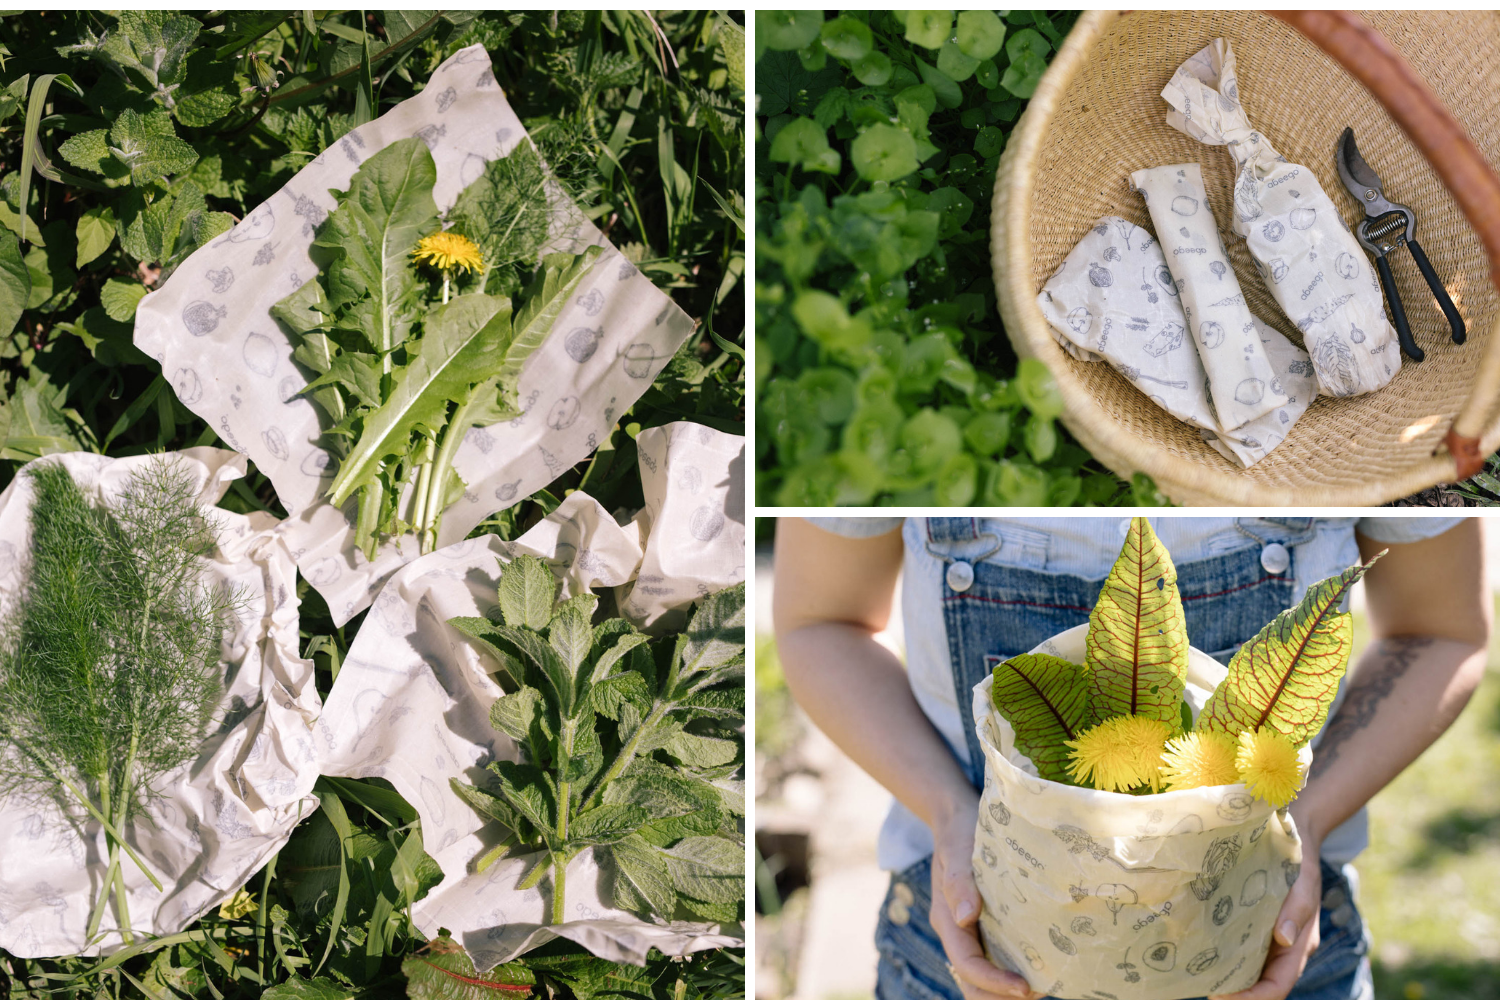 Keep foraged greens alive in Abeego beeswax wraps that breathe